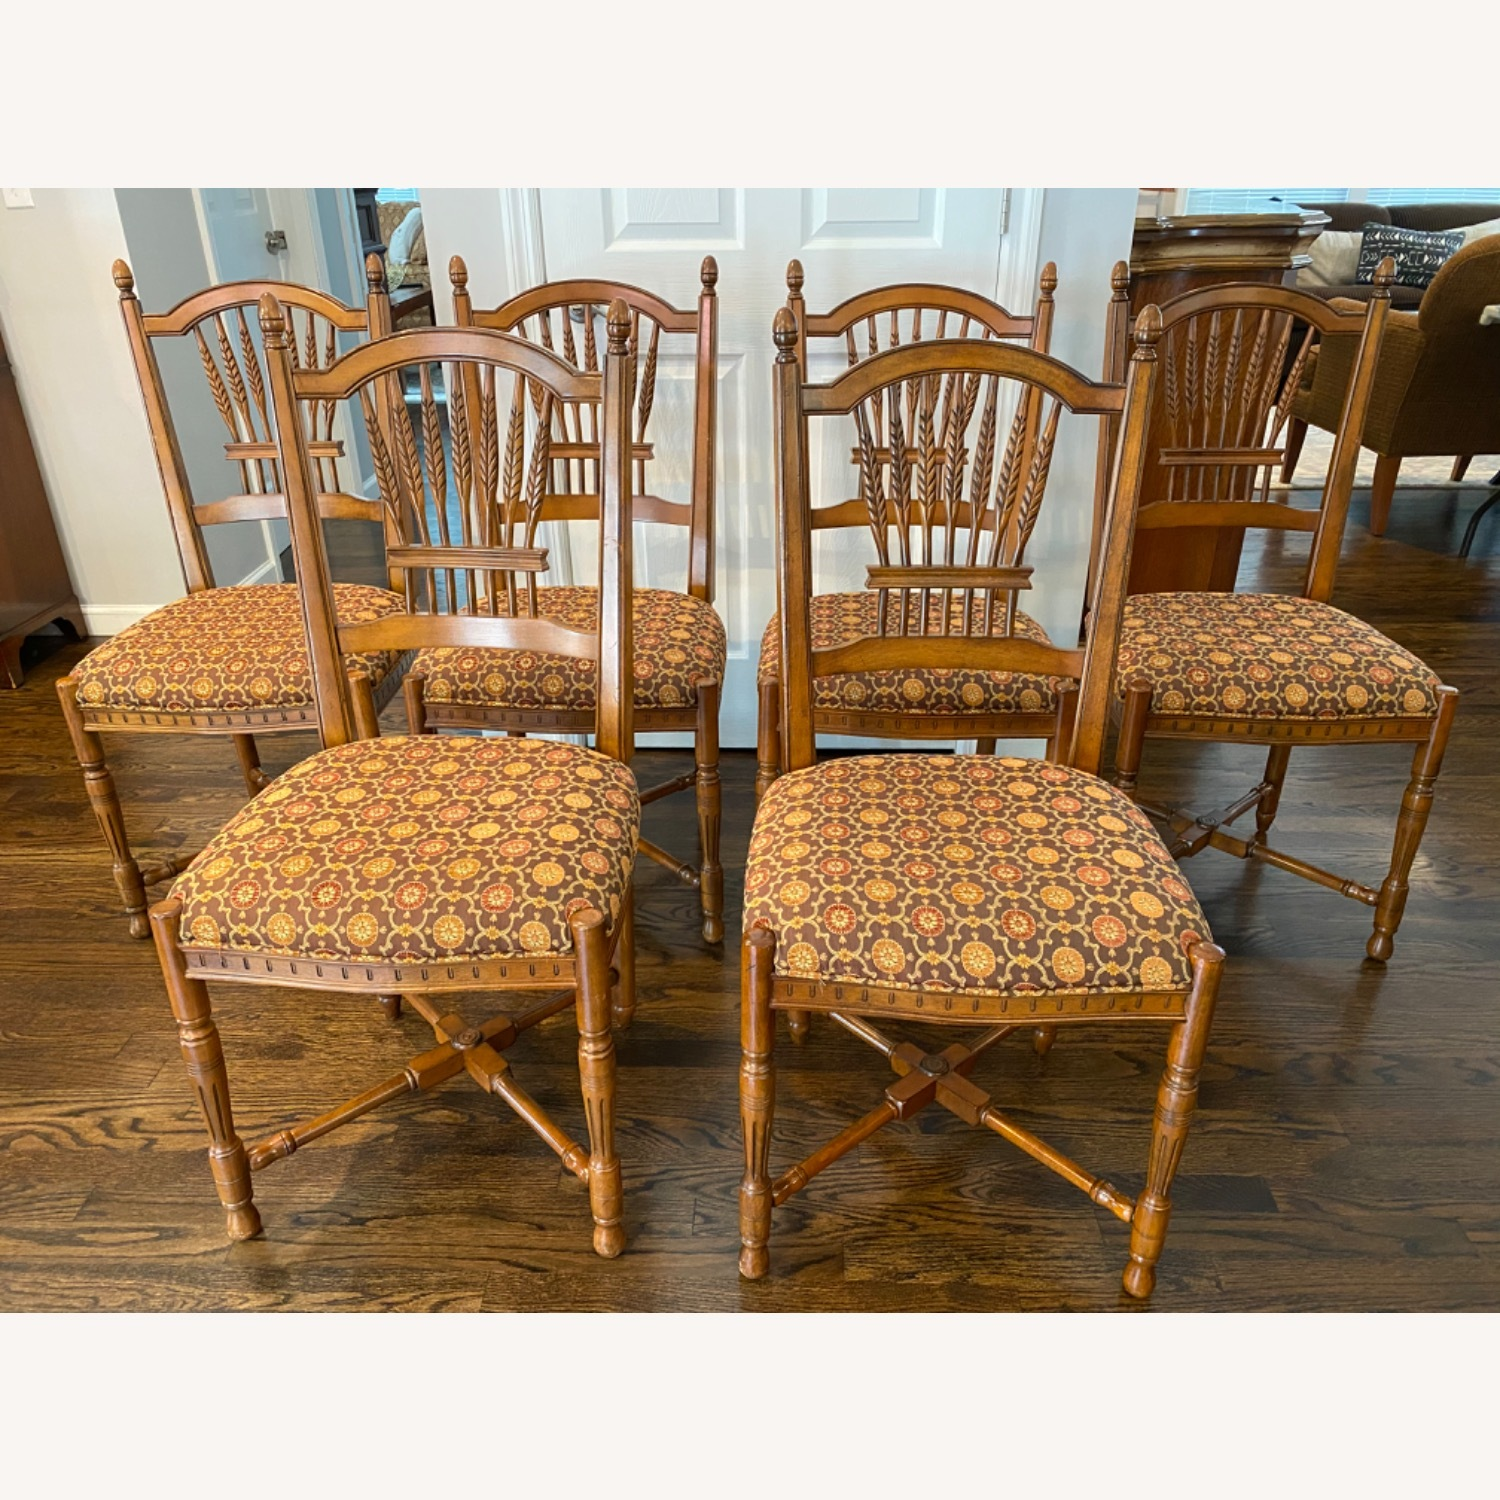 Stickley Wheat Back Dining Chairs set of 6 - image-1